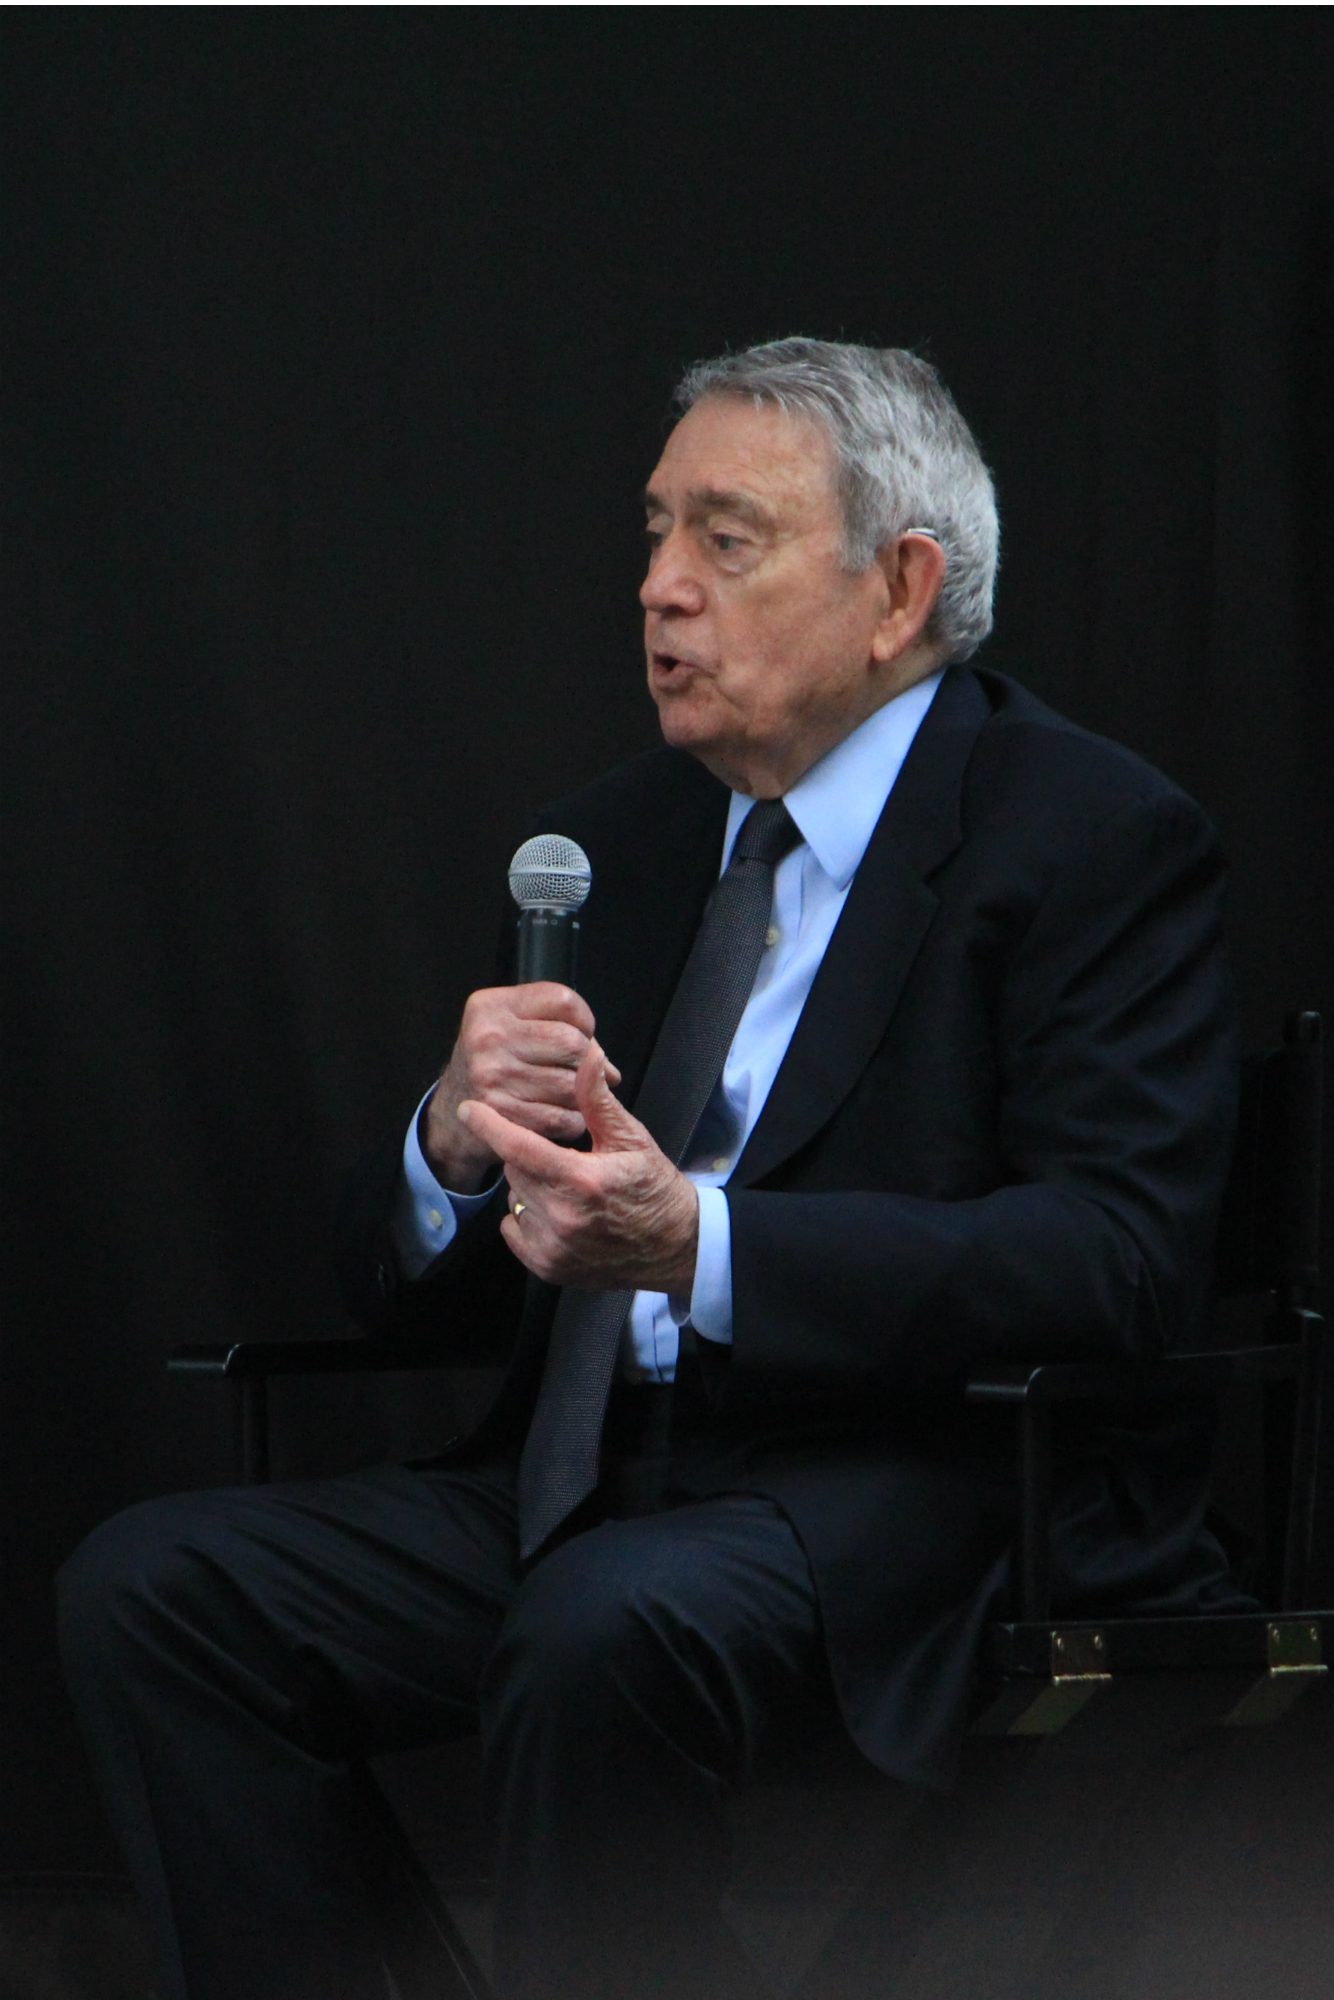 Dan Rather // The New York Times Panel // Photo by Heather Kaplan